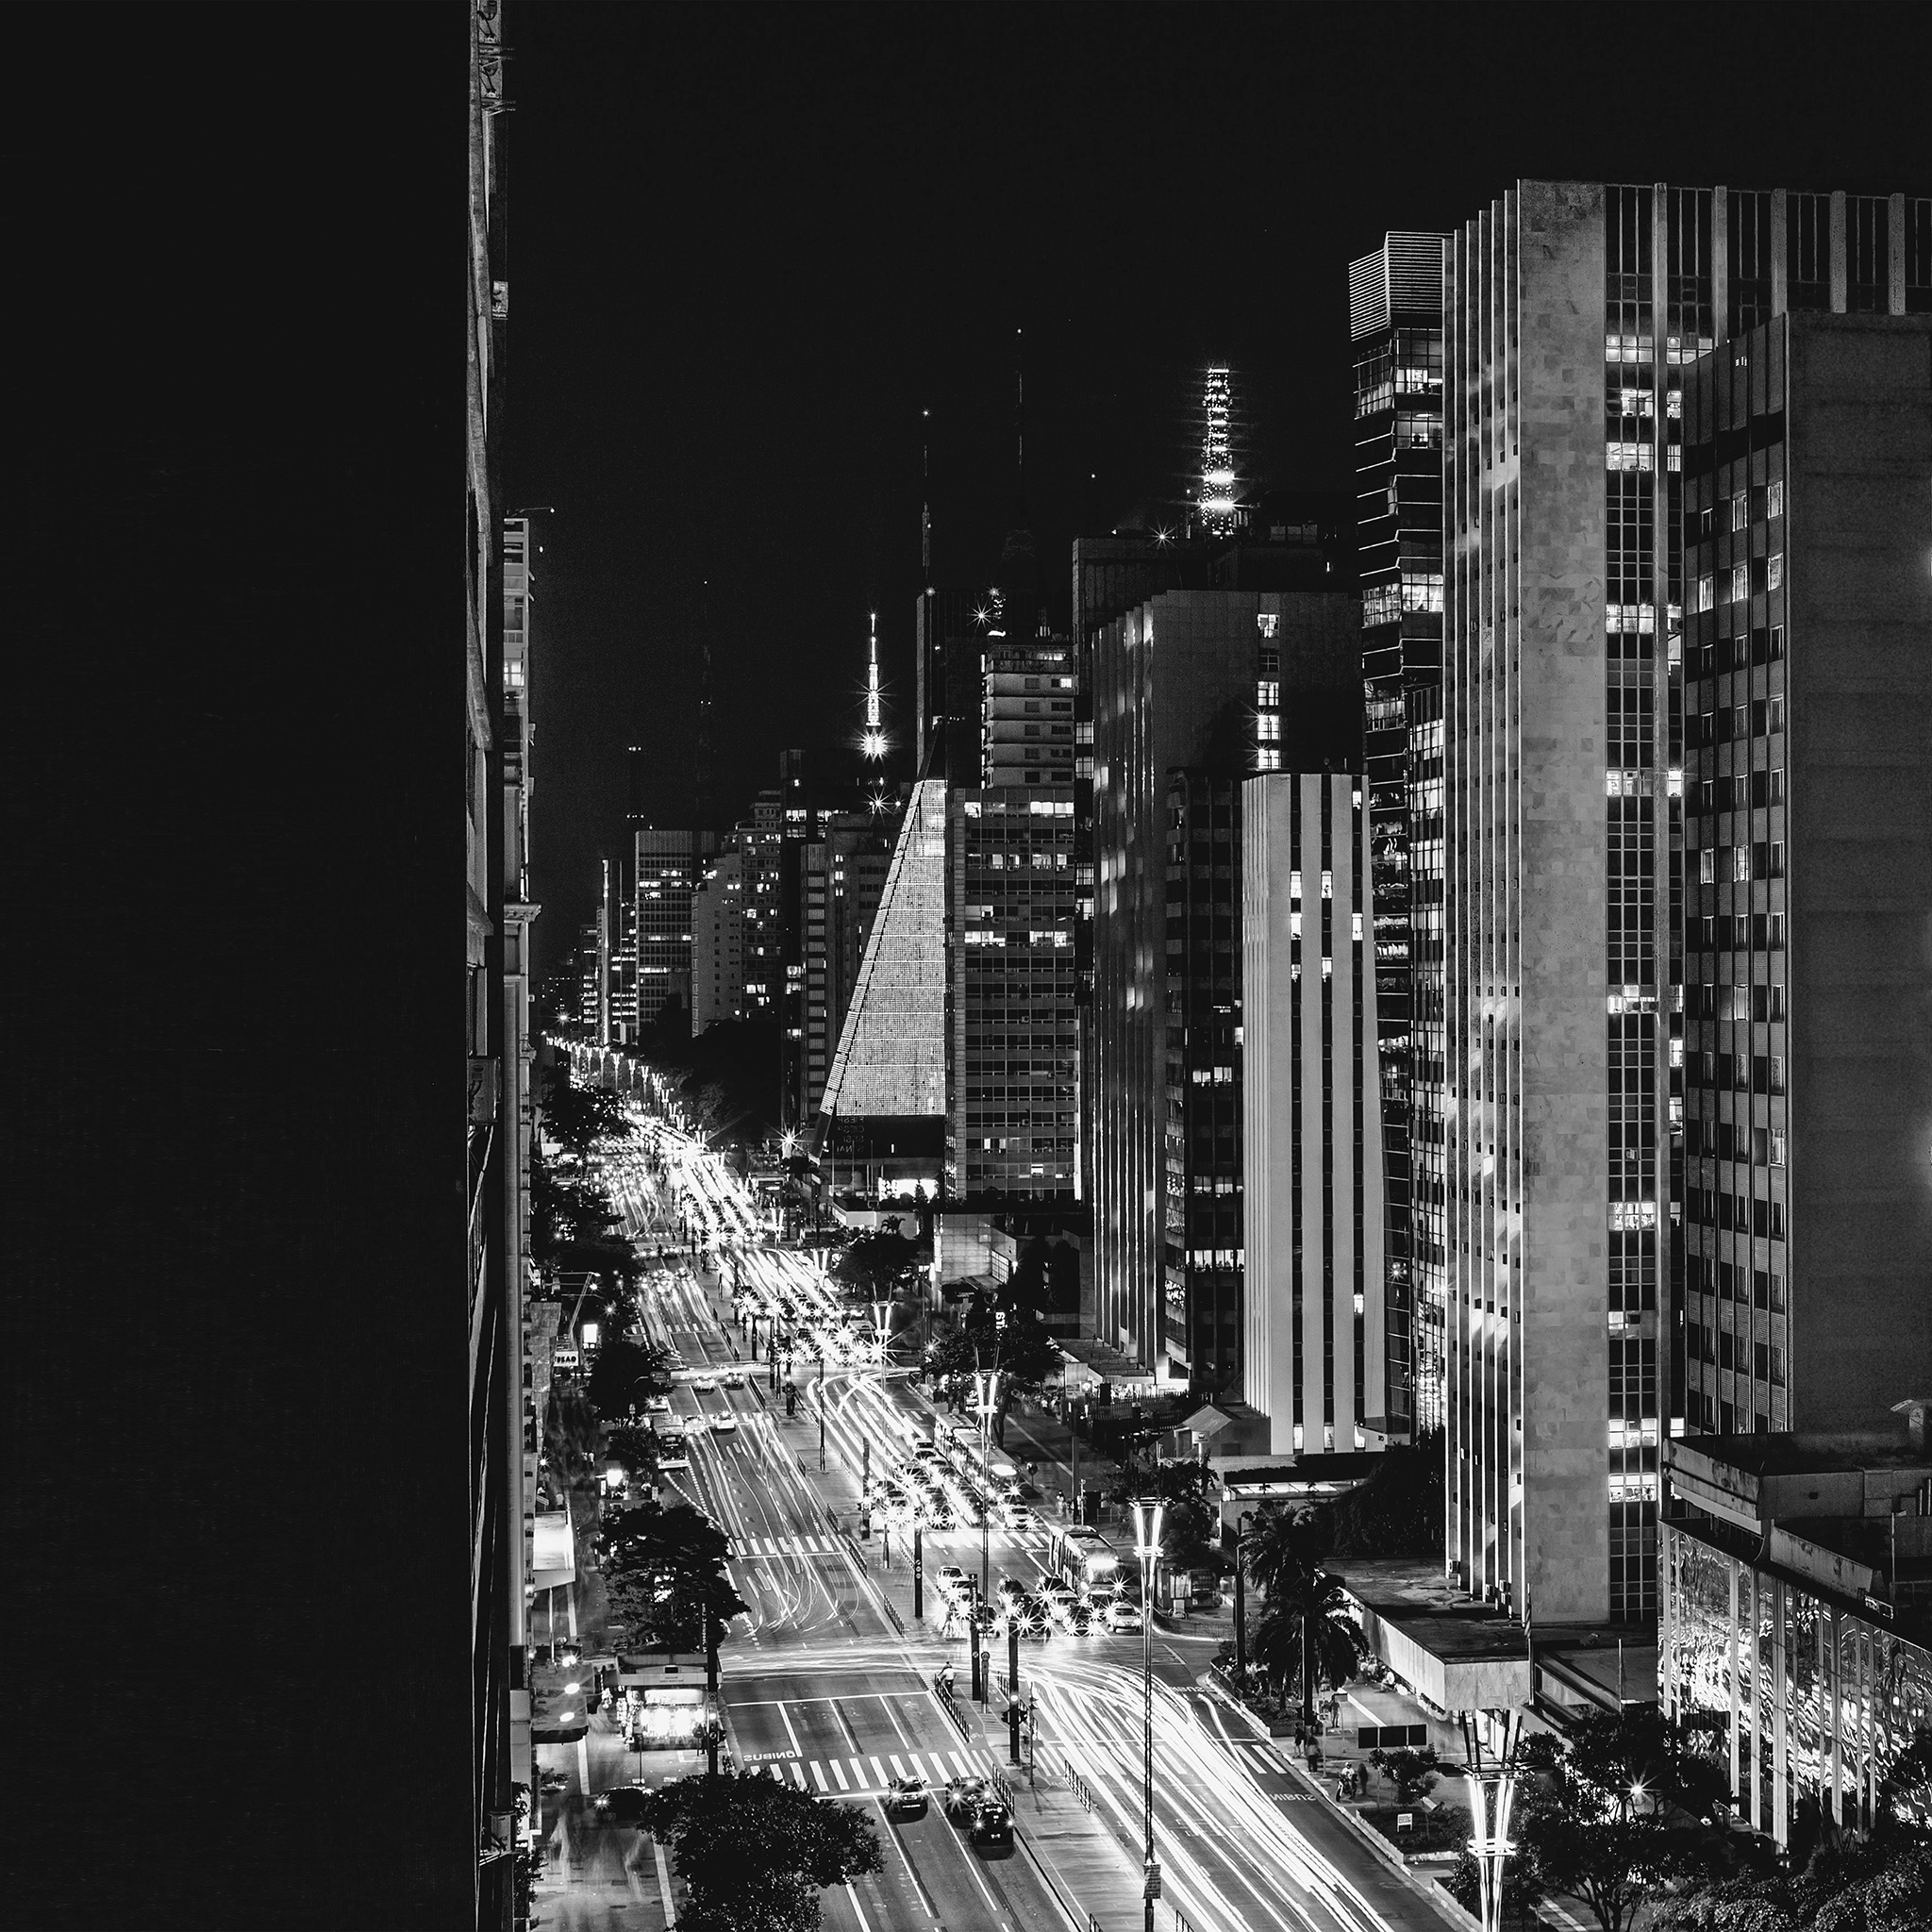 freeios8 | iphone wallpaper | nf07-city-night-view-urban-street